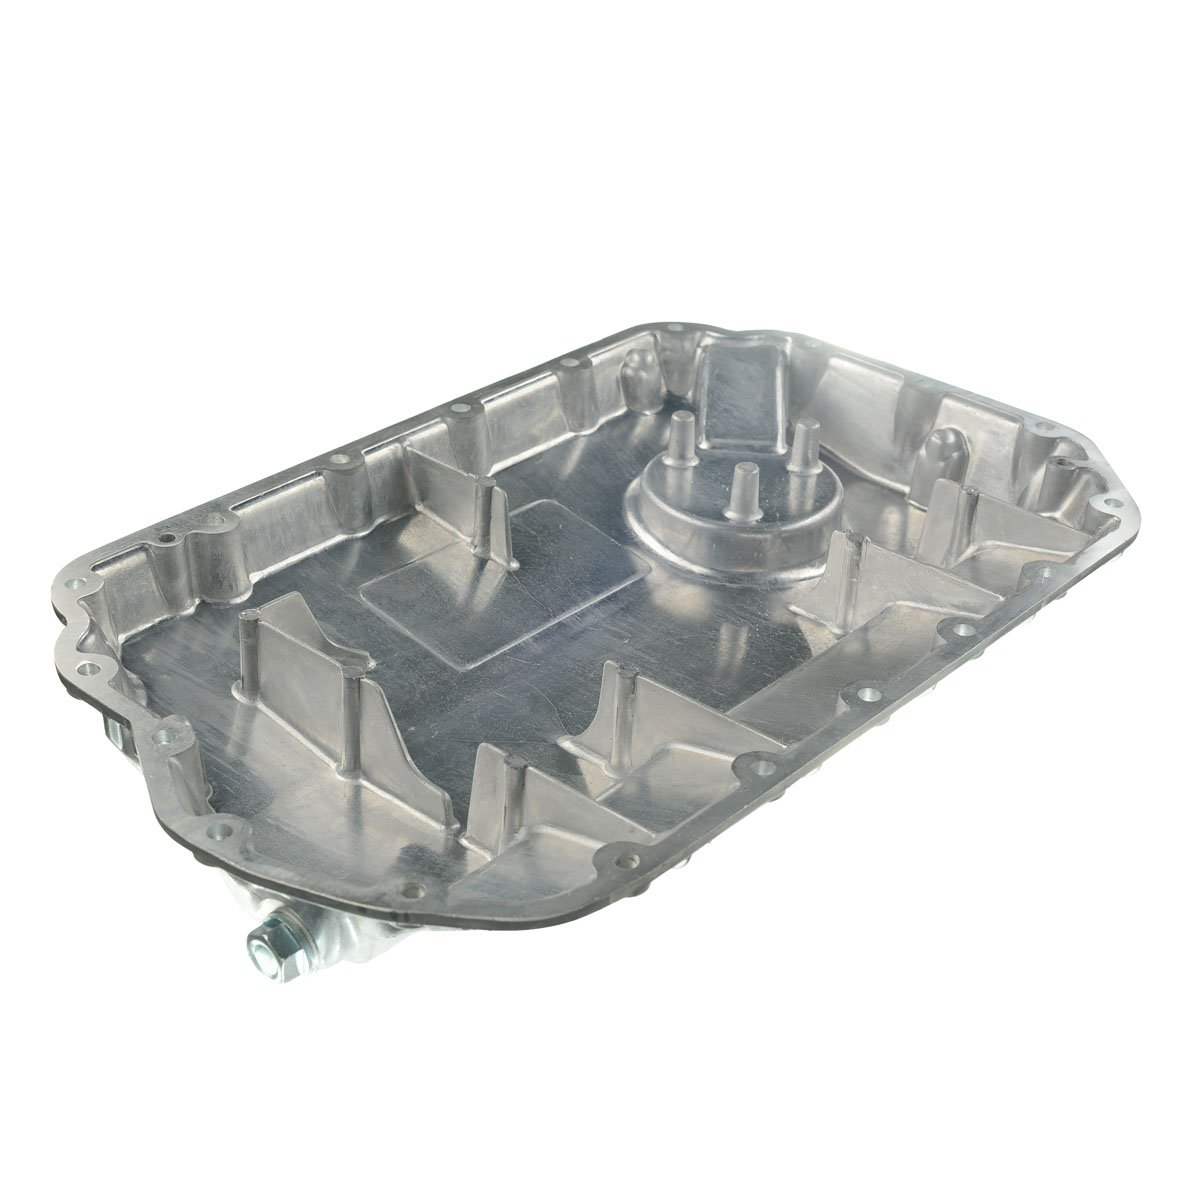 A-Premium Lower Engine Oil Pan for Volkswagen Passat 1998-2005 Audi A4 A4 Quattro A6 1999-2001 A6 Quattro Allroad Quattro S4